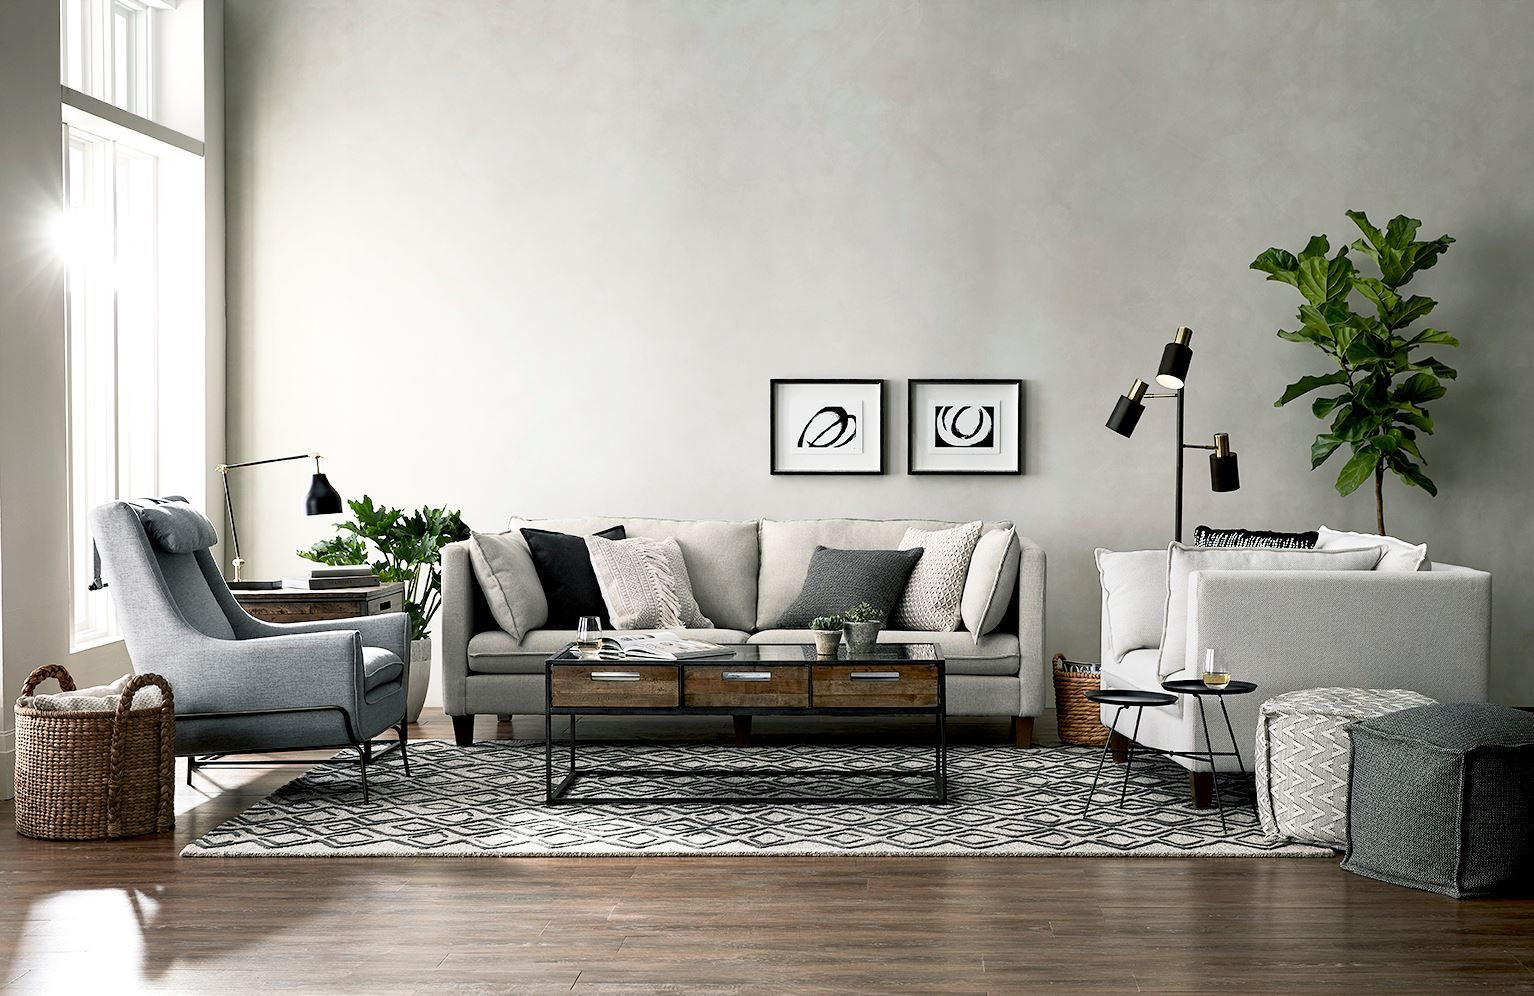 Hudsons Bay Canada Boxing Week in July Sale on Furniture